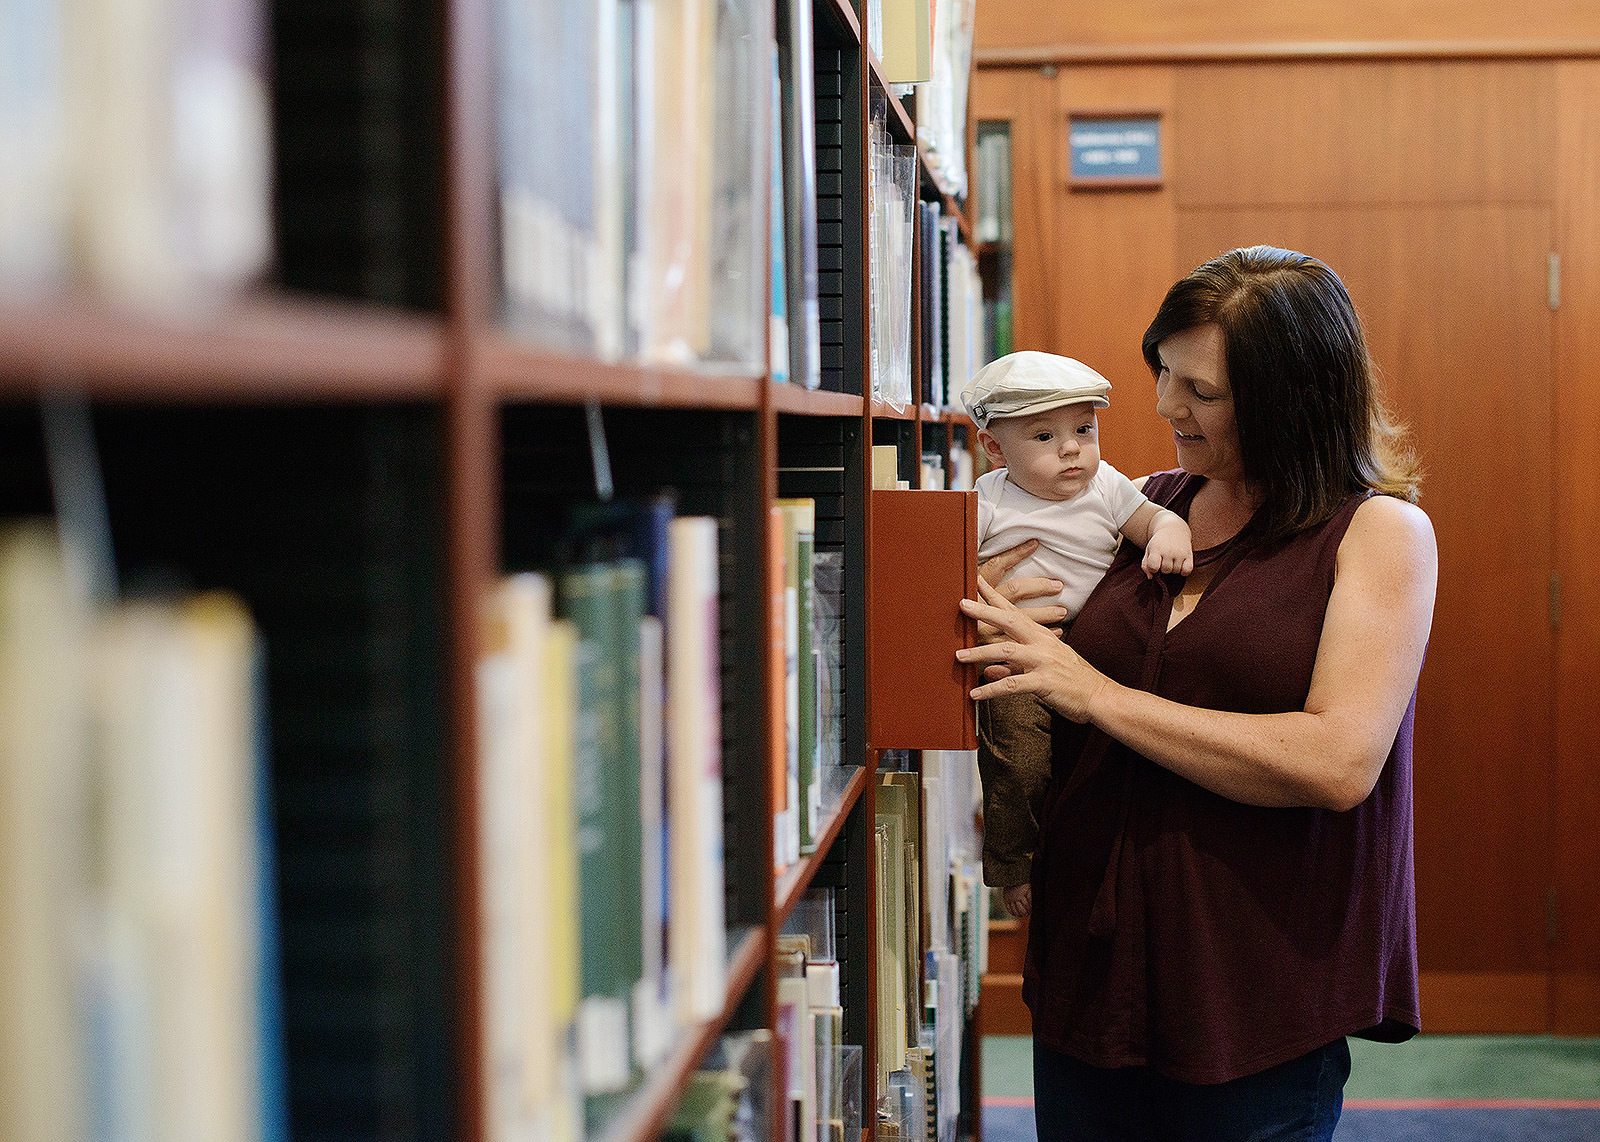 Mom and Baby Son in Library Book Stacks